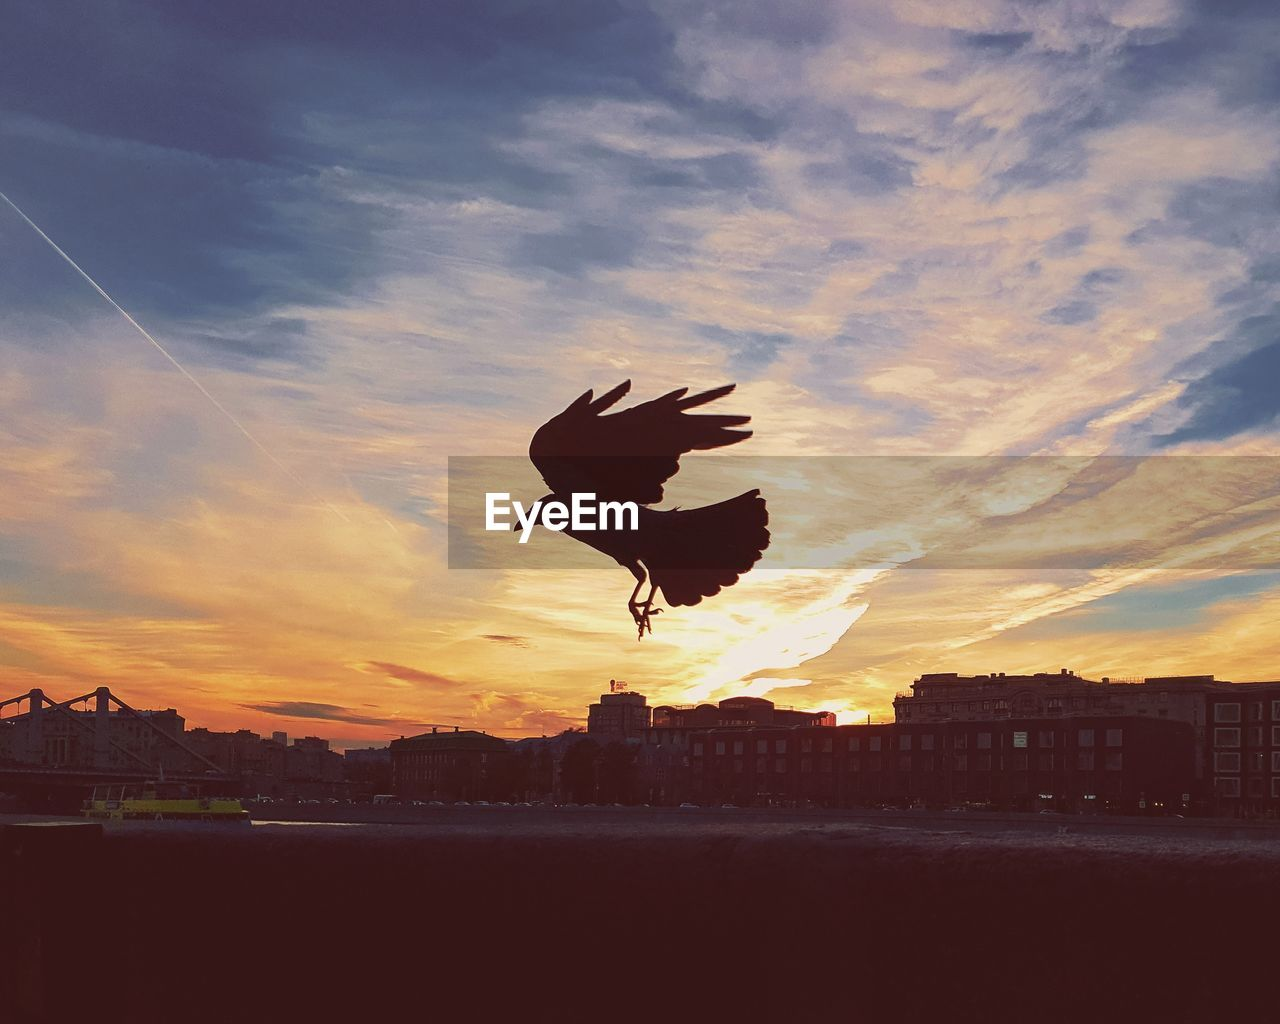 sunset, sky, bird, cloud - sky, animal themes, animal, one animal, vertebrate, animal wildlife, silhouette, flying, animals in the wild, architecture, built structure, building exterior, city, spread wings, nature, no people, beauty in nature, outdoors, cityscape